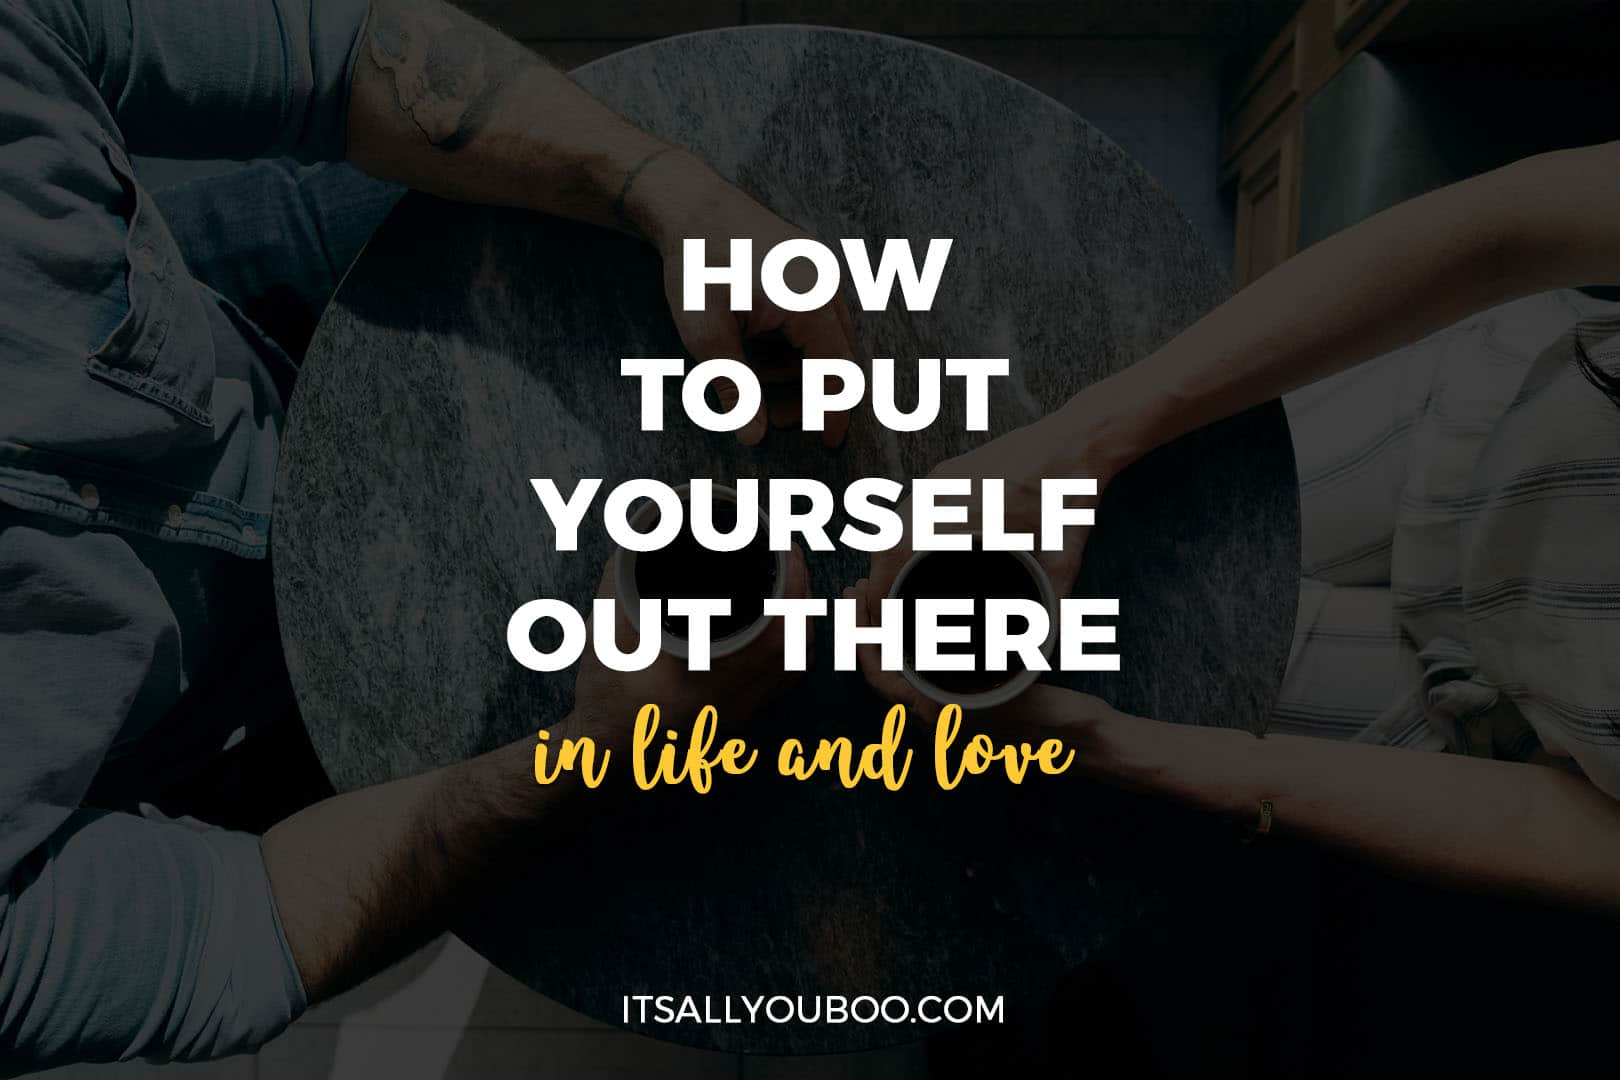 How to Put Yourself Out There in Life and Love